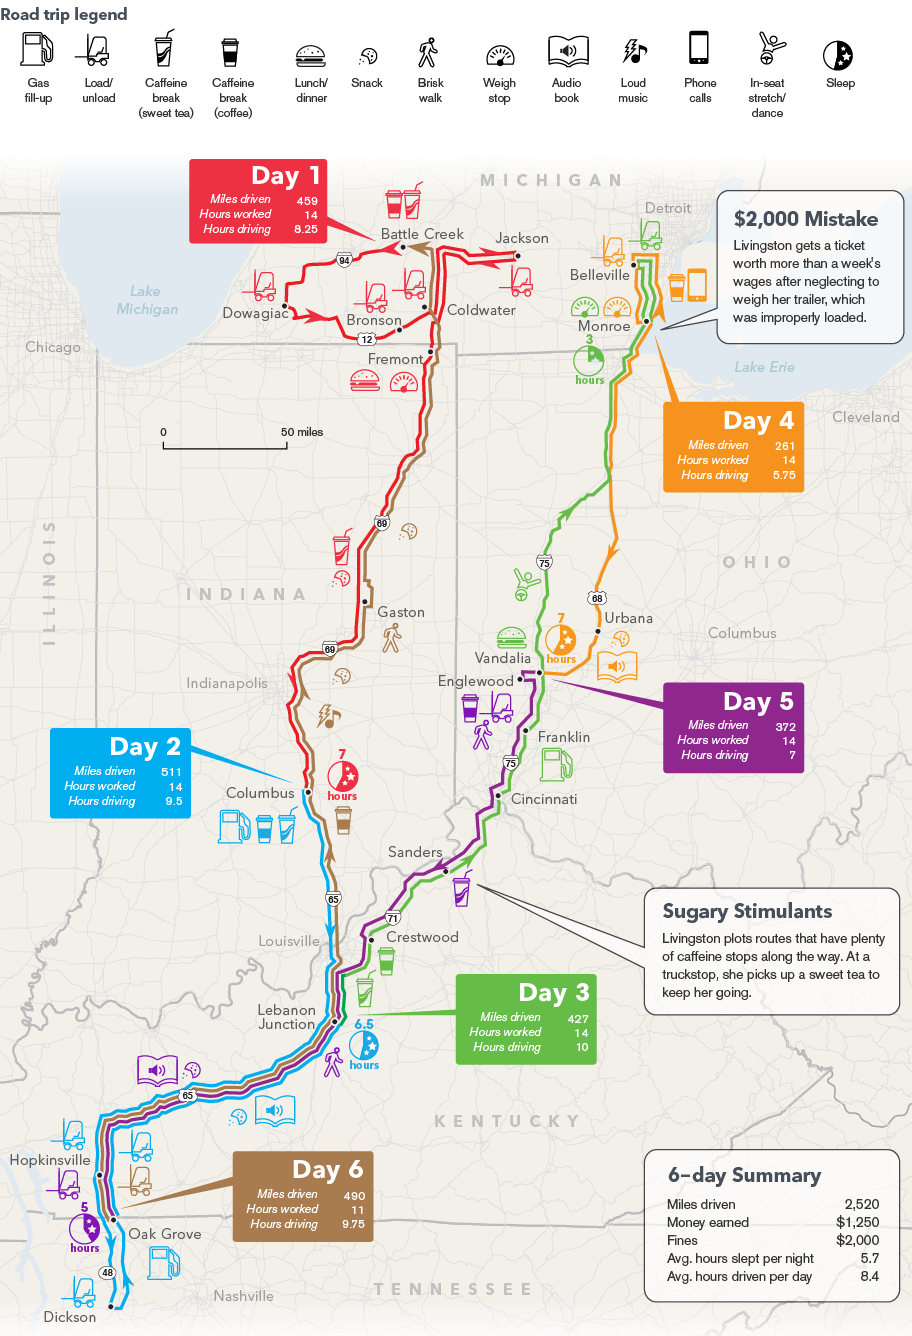 http://www.bloomberg.com/infographics/2014-12-17/truckers-odyssey-six-days-on-the-road.html